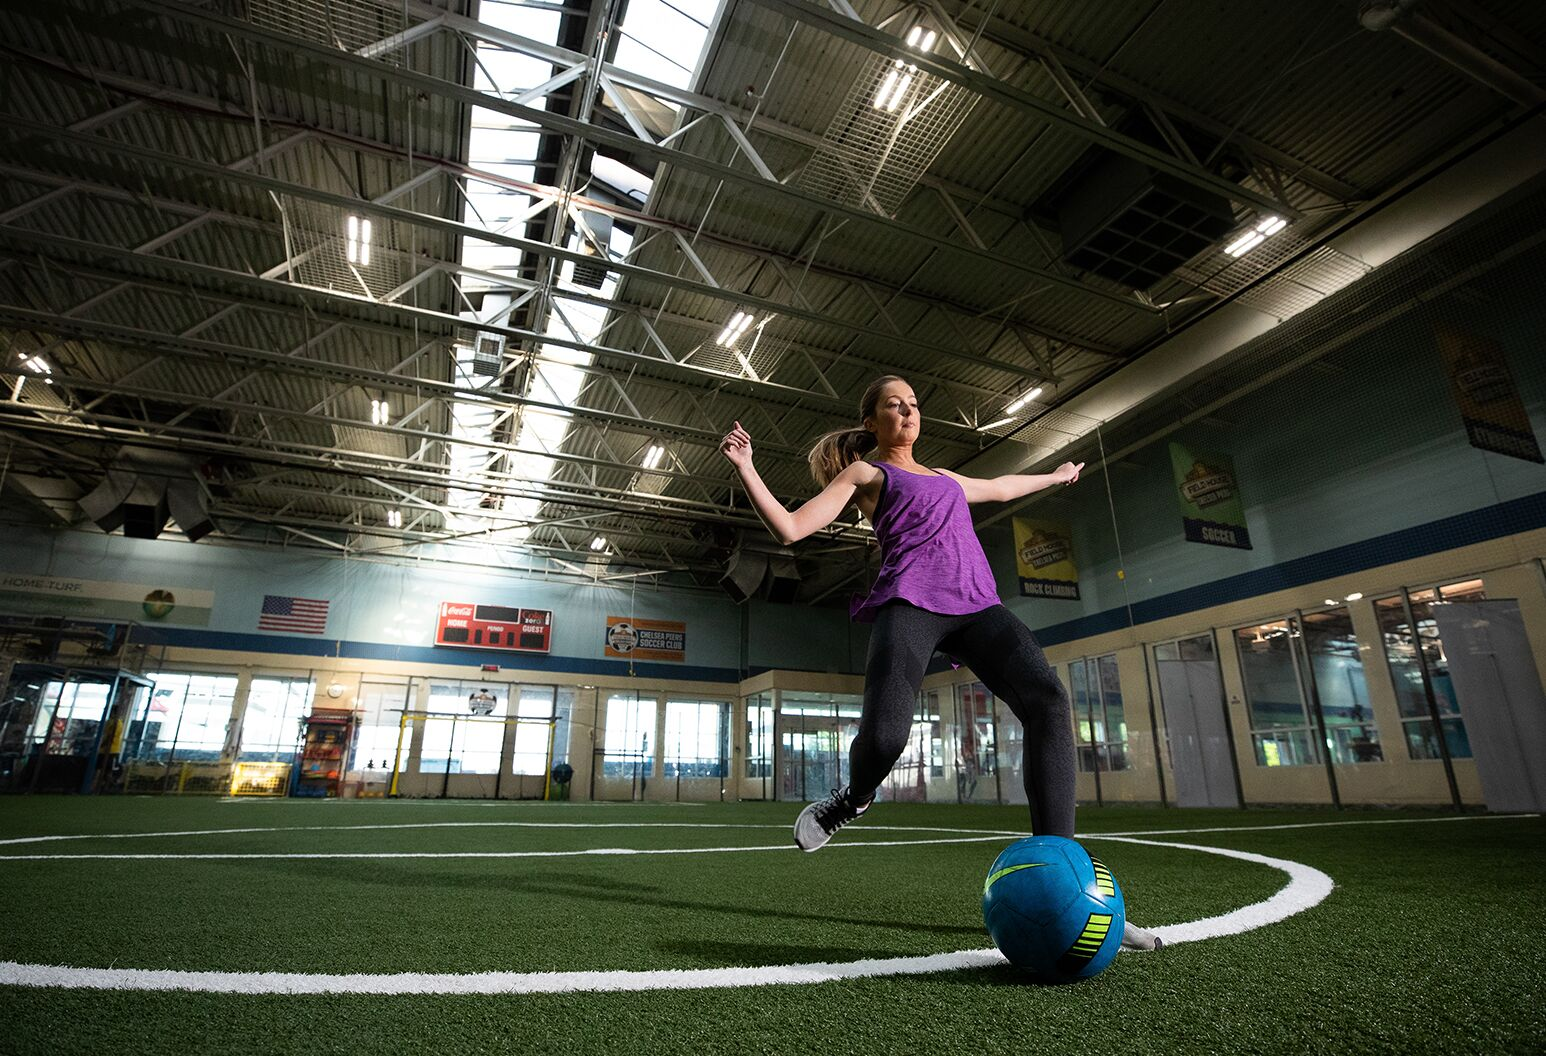 Young female athlete is kicking a ball on an indoor soccer field